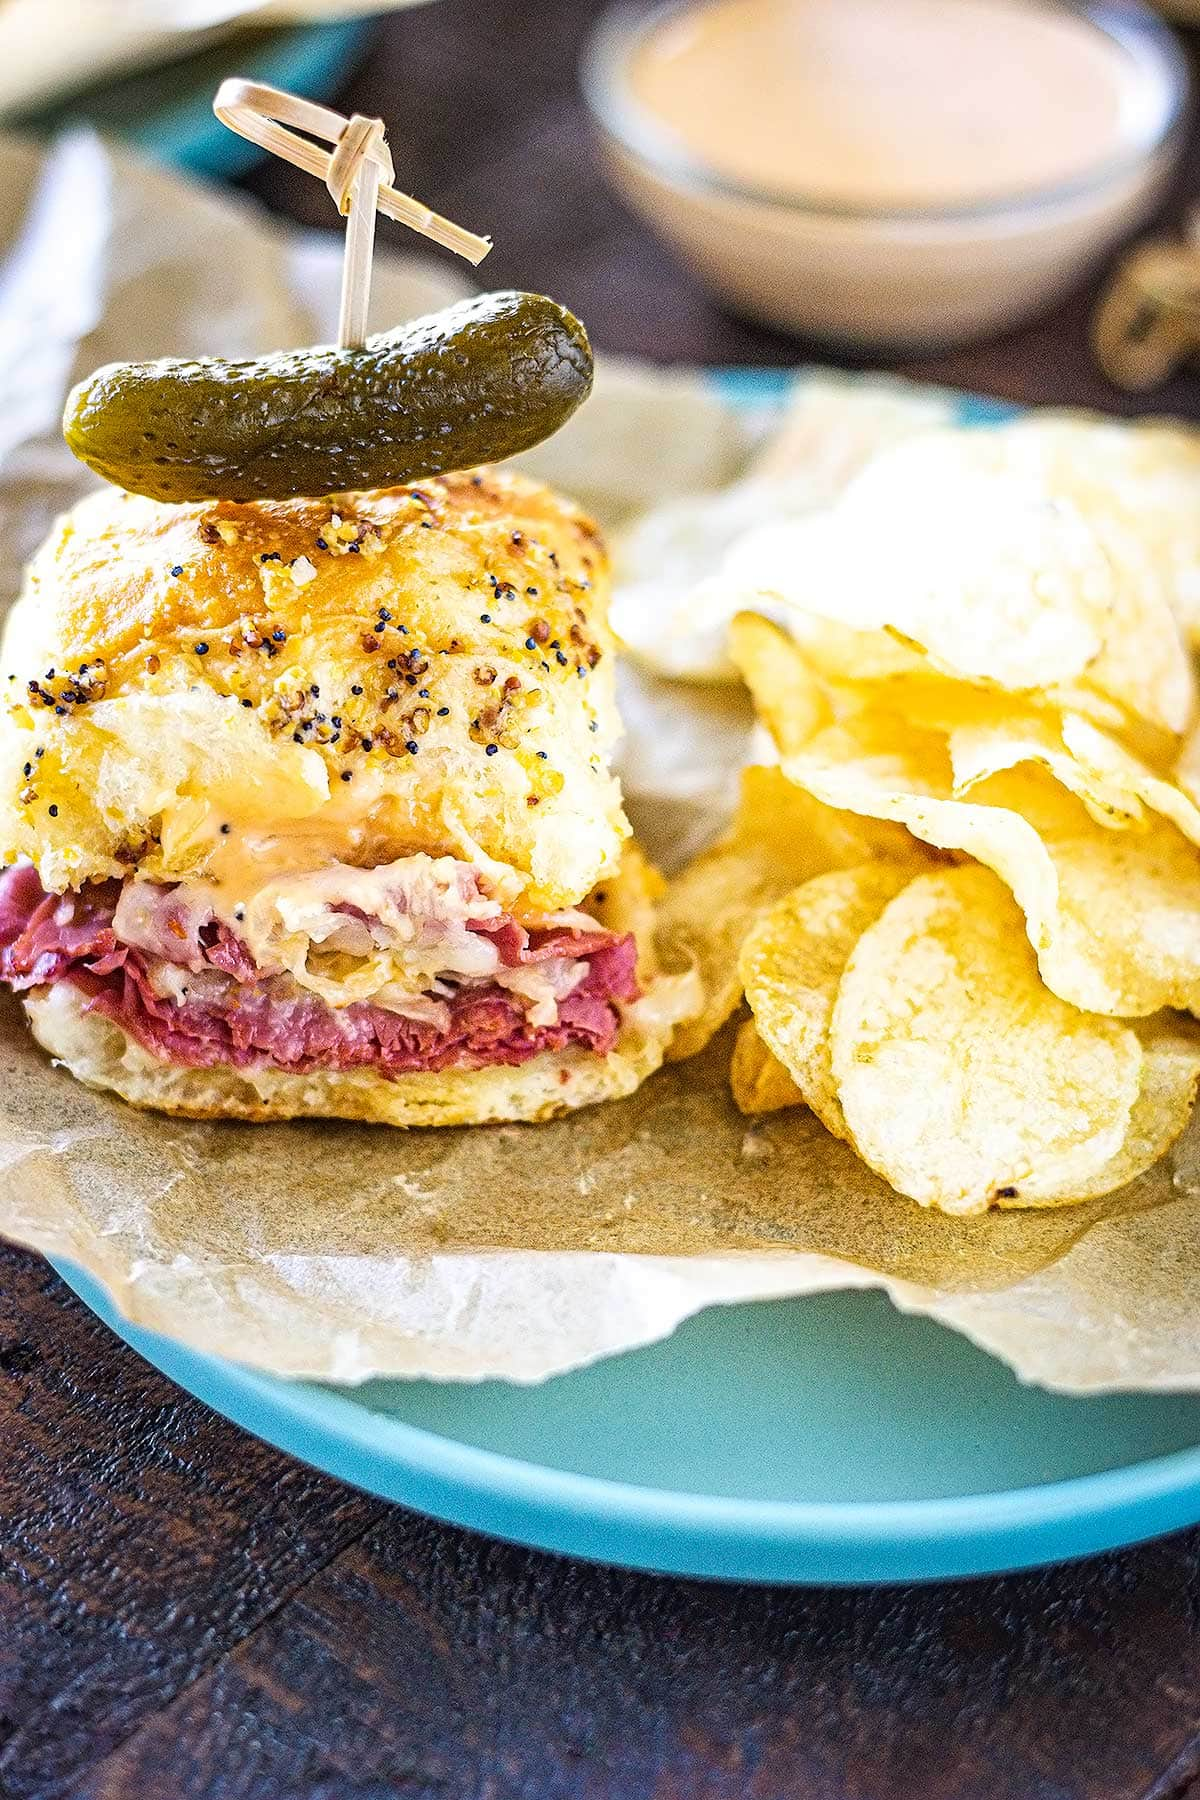 A baked reuben sandwich slider topped with a pickle along with kettle chips on a plate lined with parchment paper.